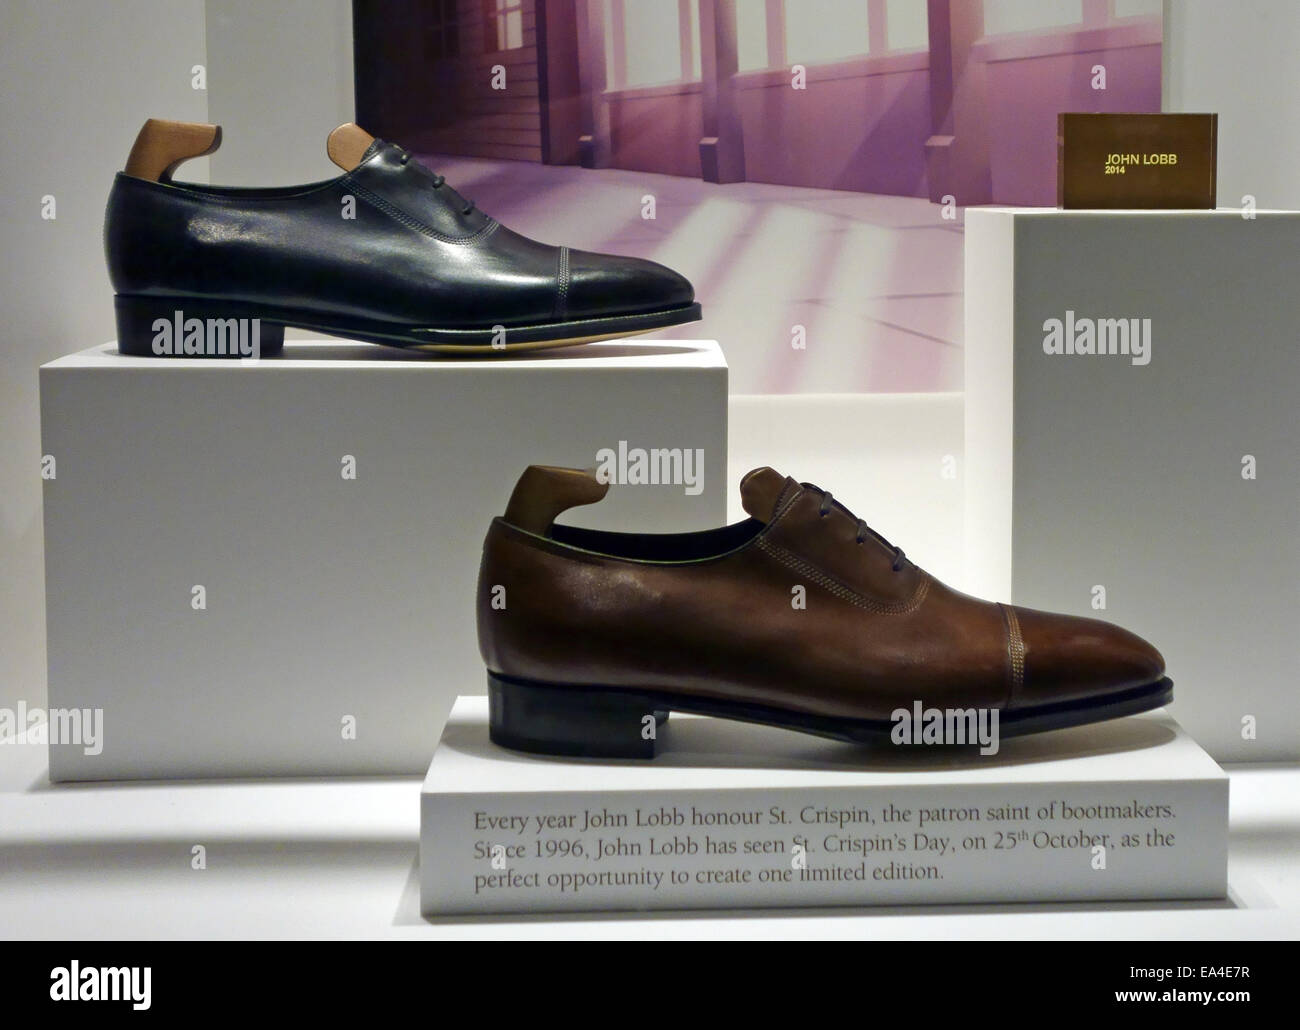 John Lobb footwear shop, Jermyn Street, London - Stock Image